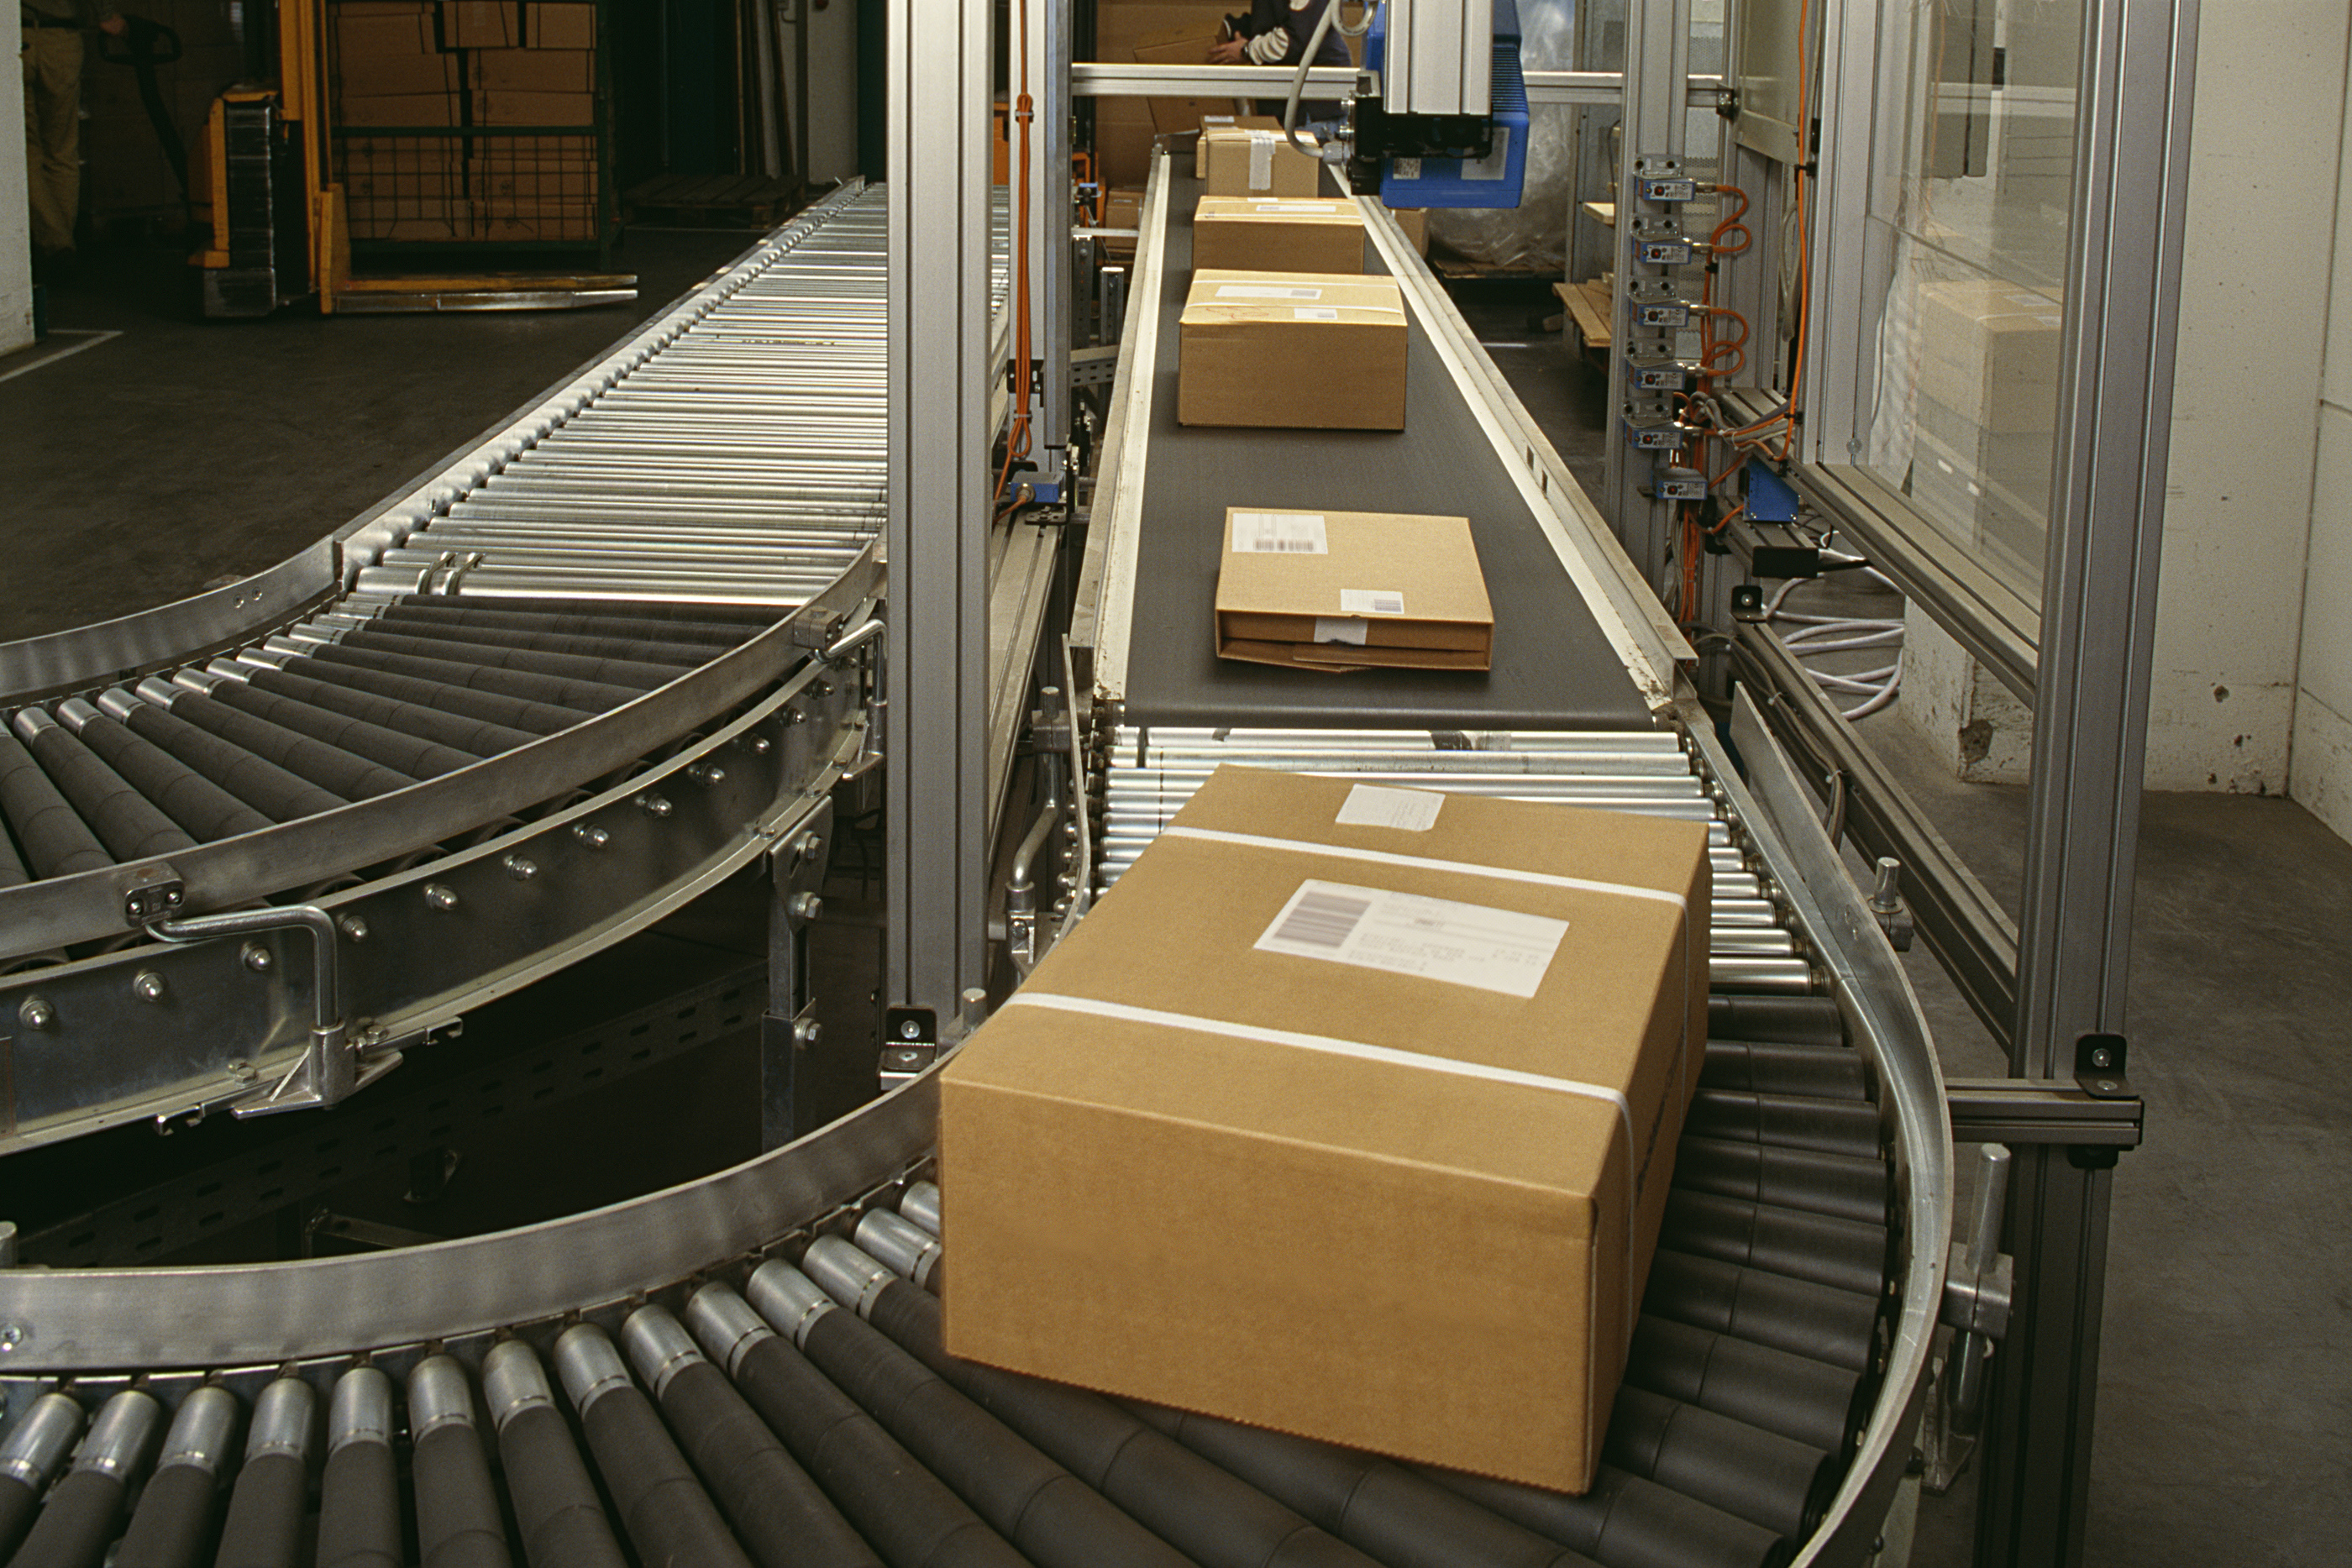 Inventory flowing through a warehouse assembly line